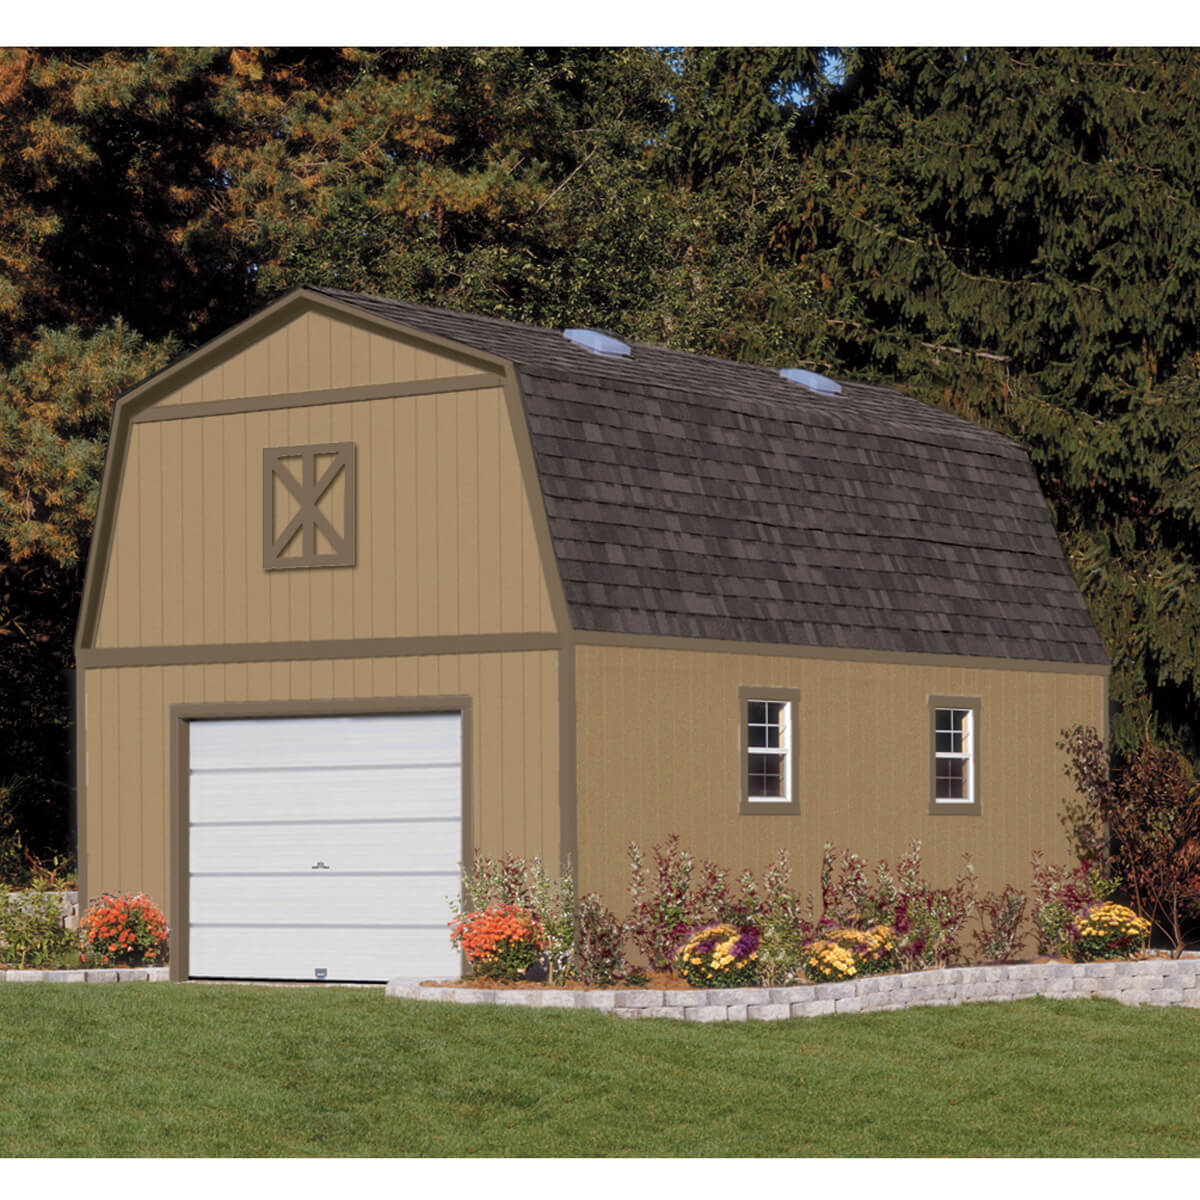 Two Story Shed With Stairs For Storage Or Workshop Everest